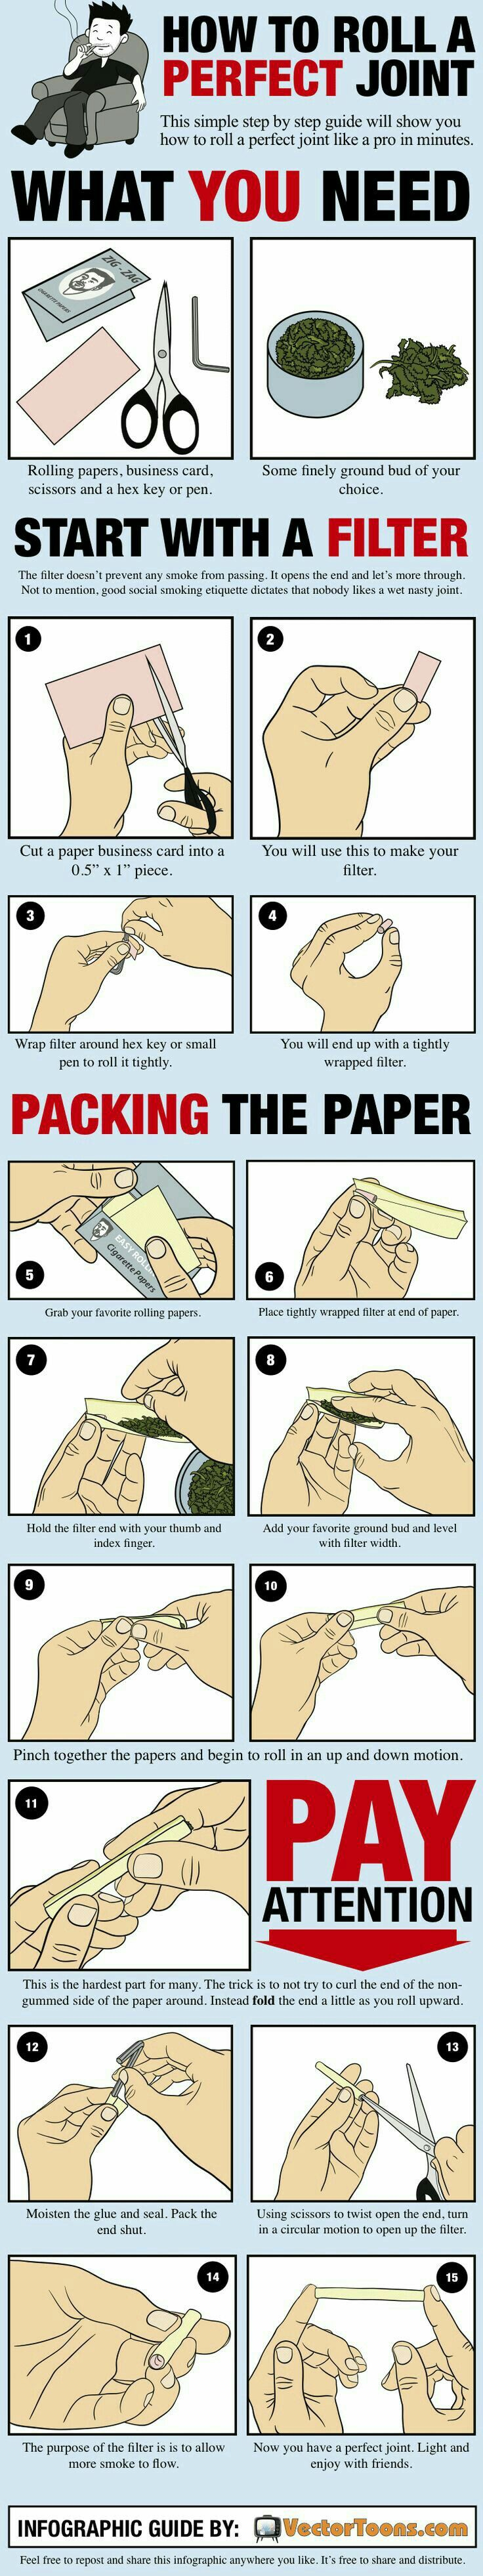 HOW TO ROLL THE PERFECT SPLIFF. https://twitter.com/CANNABISBLUE https://teespring.com/stores/cannabis-life-2 http://www.ilovegrowingmarijuana.com/2197.html CHECK OUT MY OTHER STUFF TOO!!!